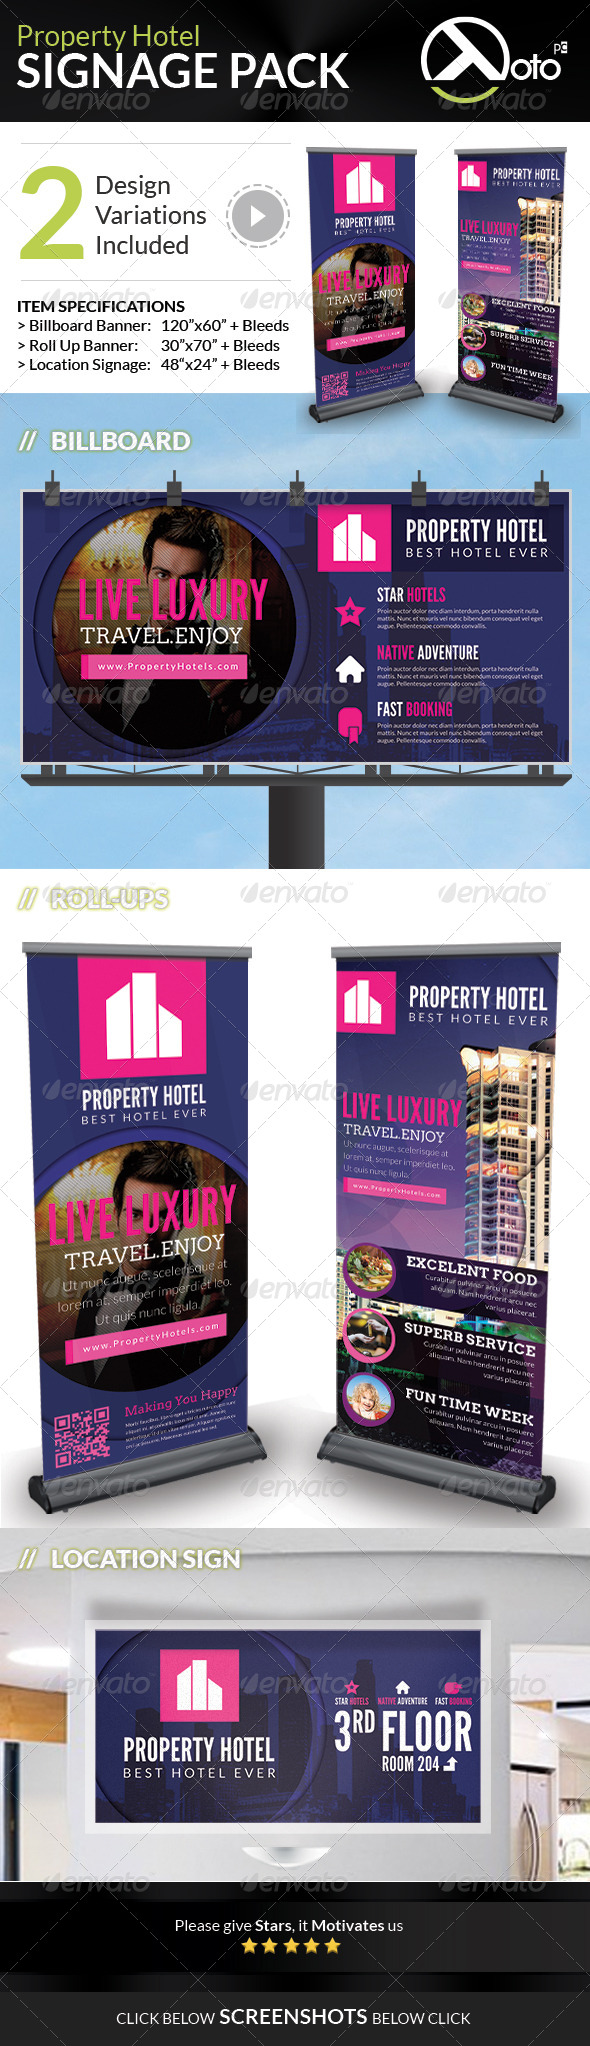 GraphicRiver Property Hotel Signage Pack 7153031